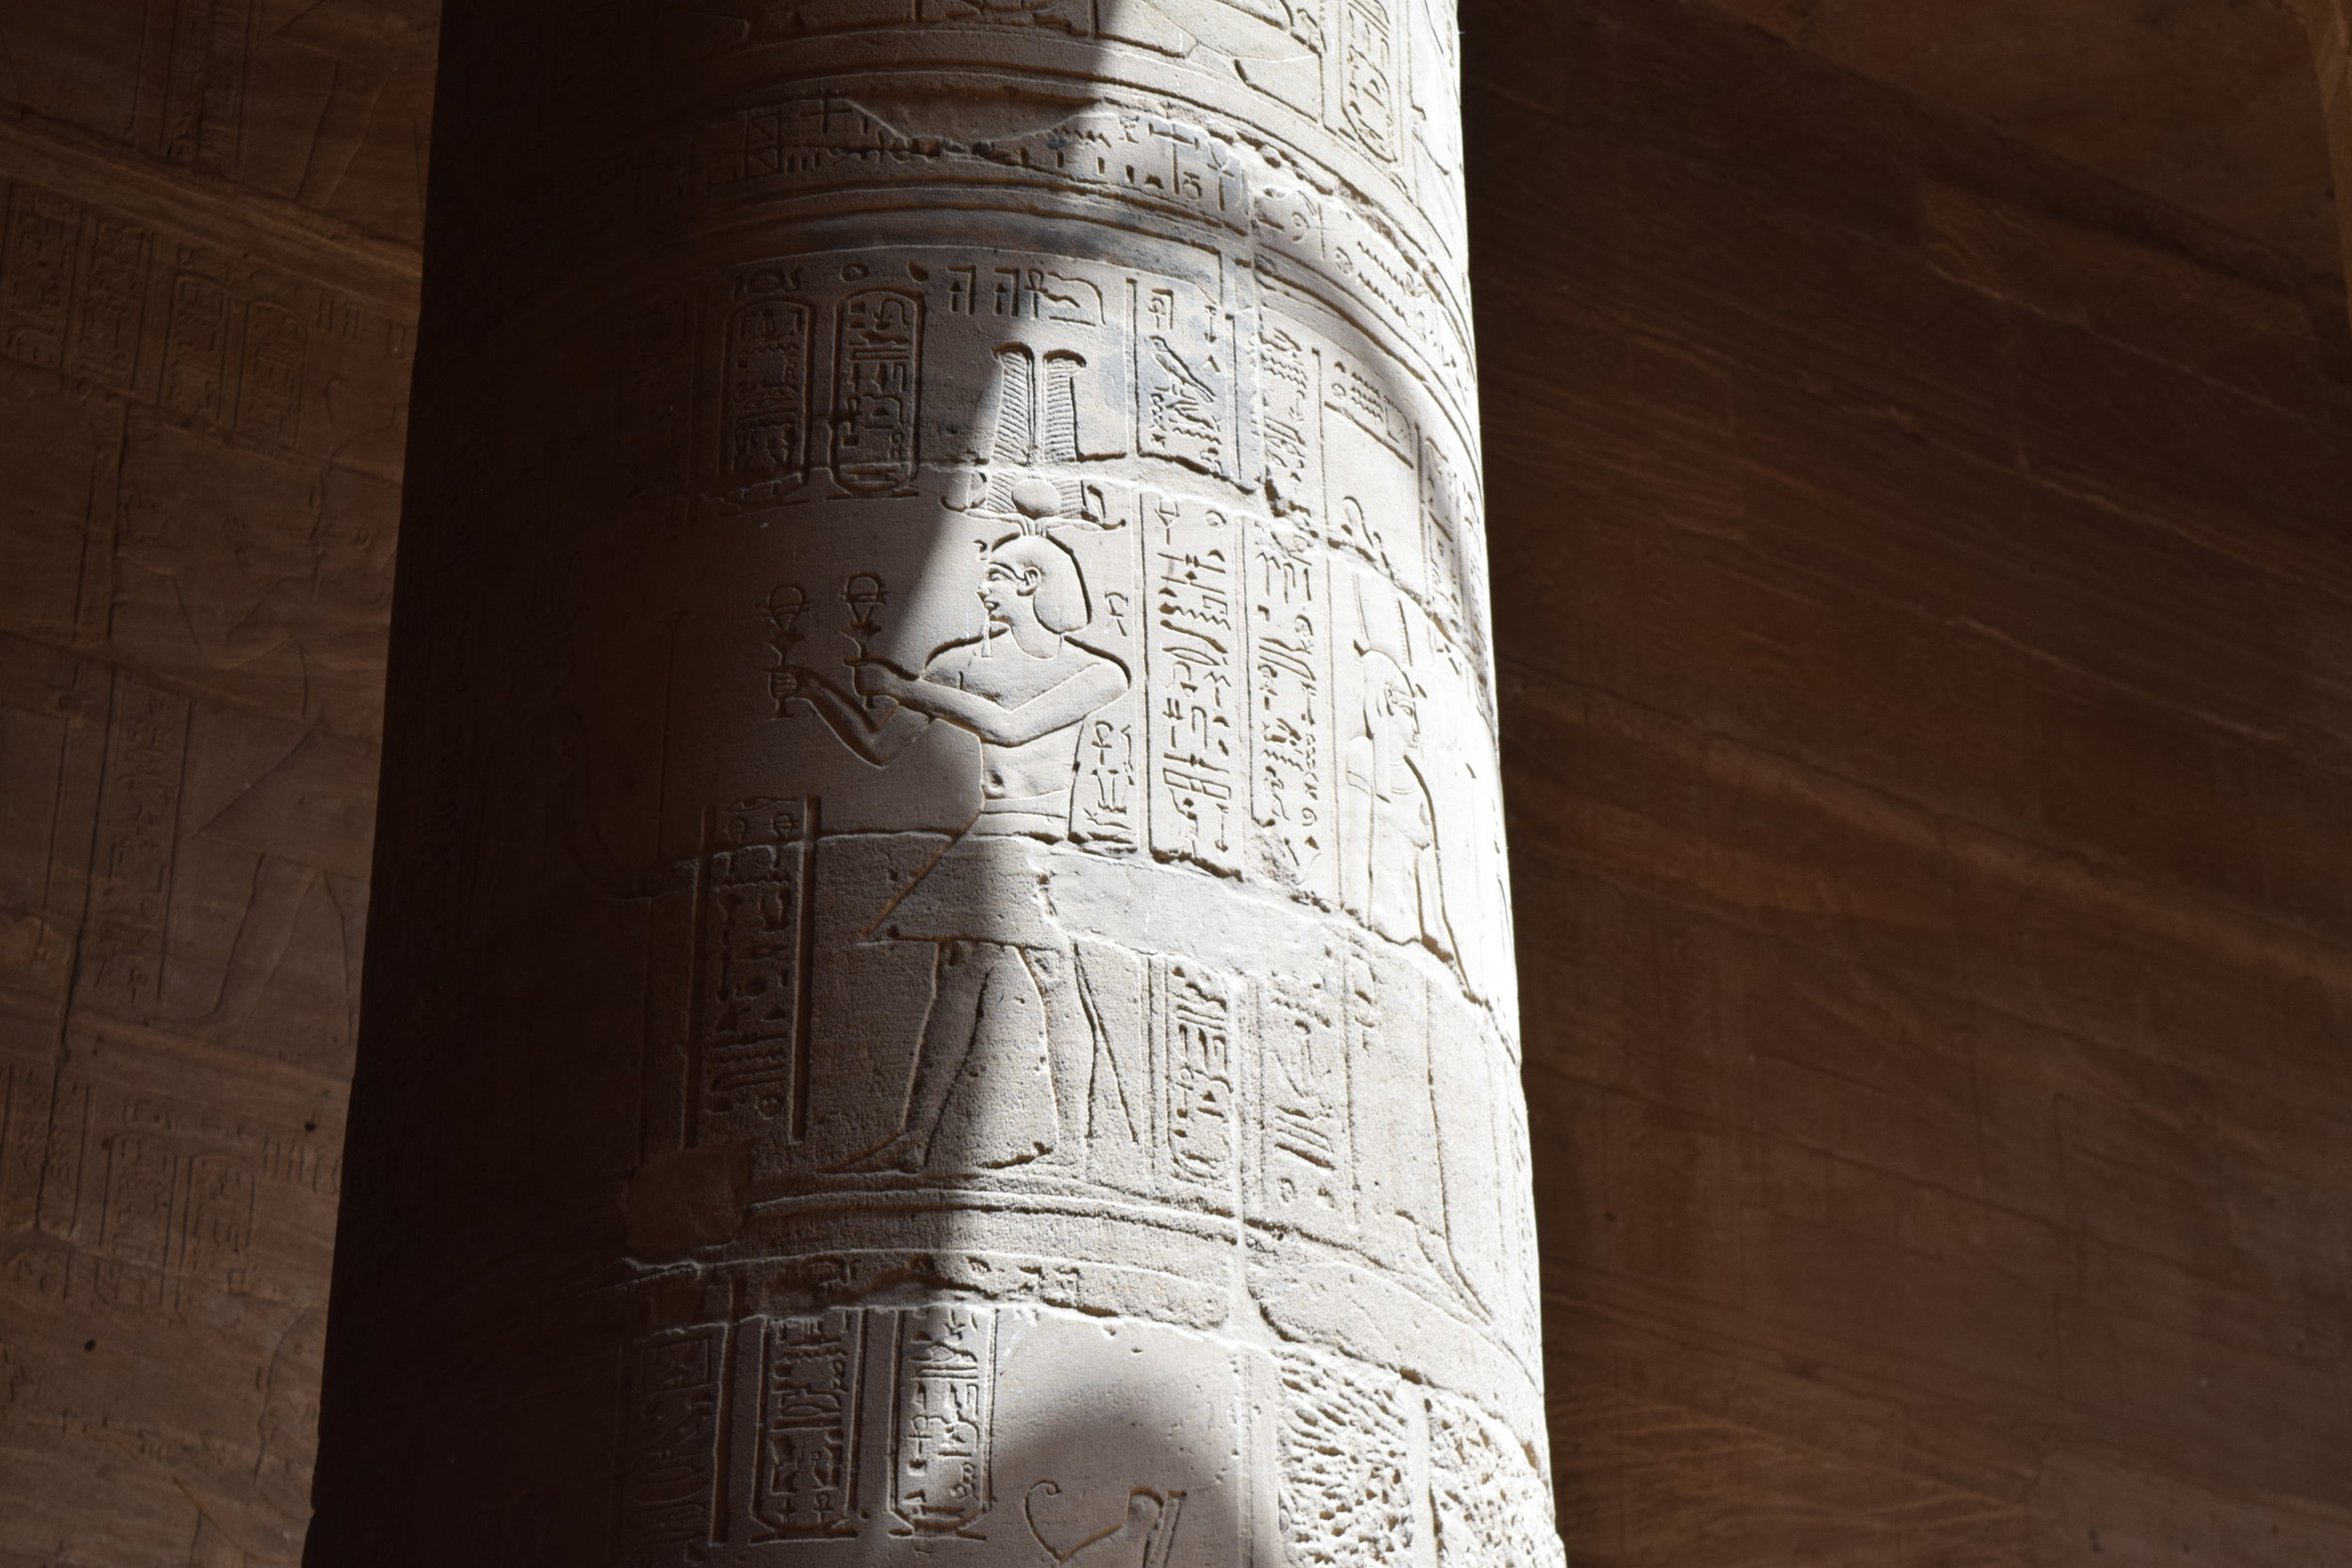 Inscriptions on the columns